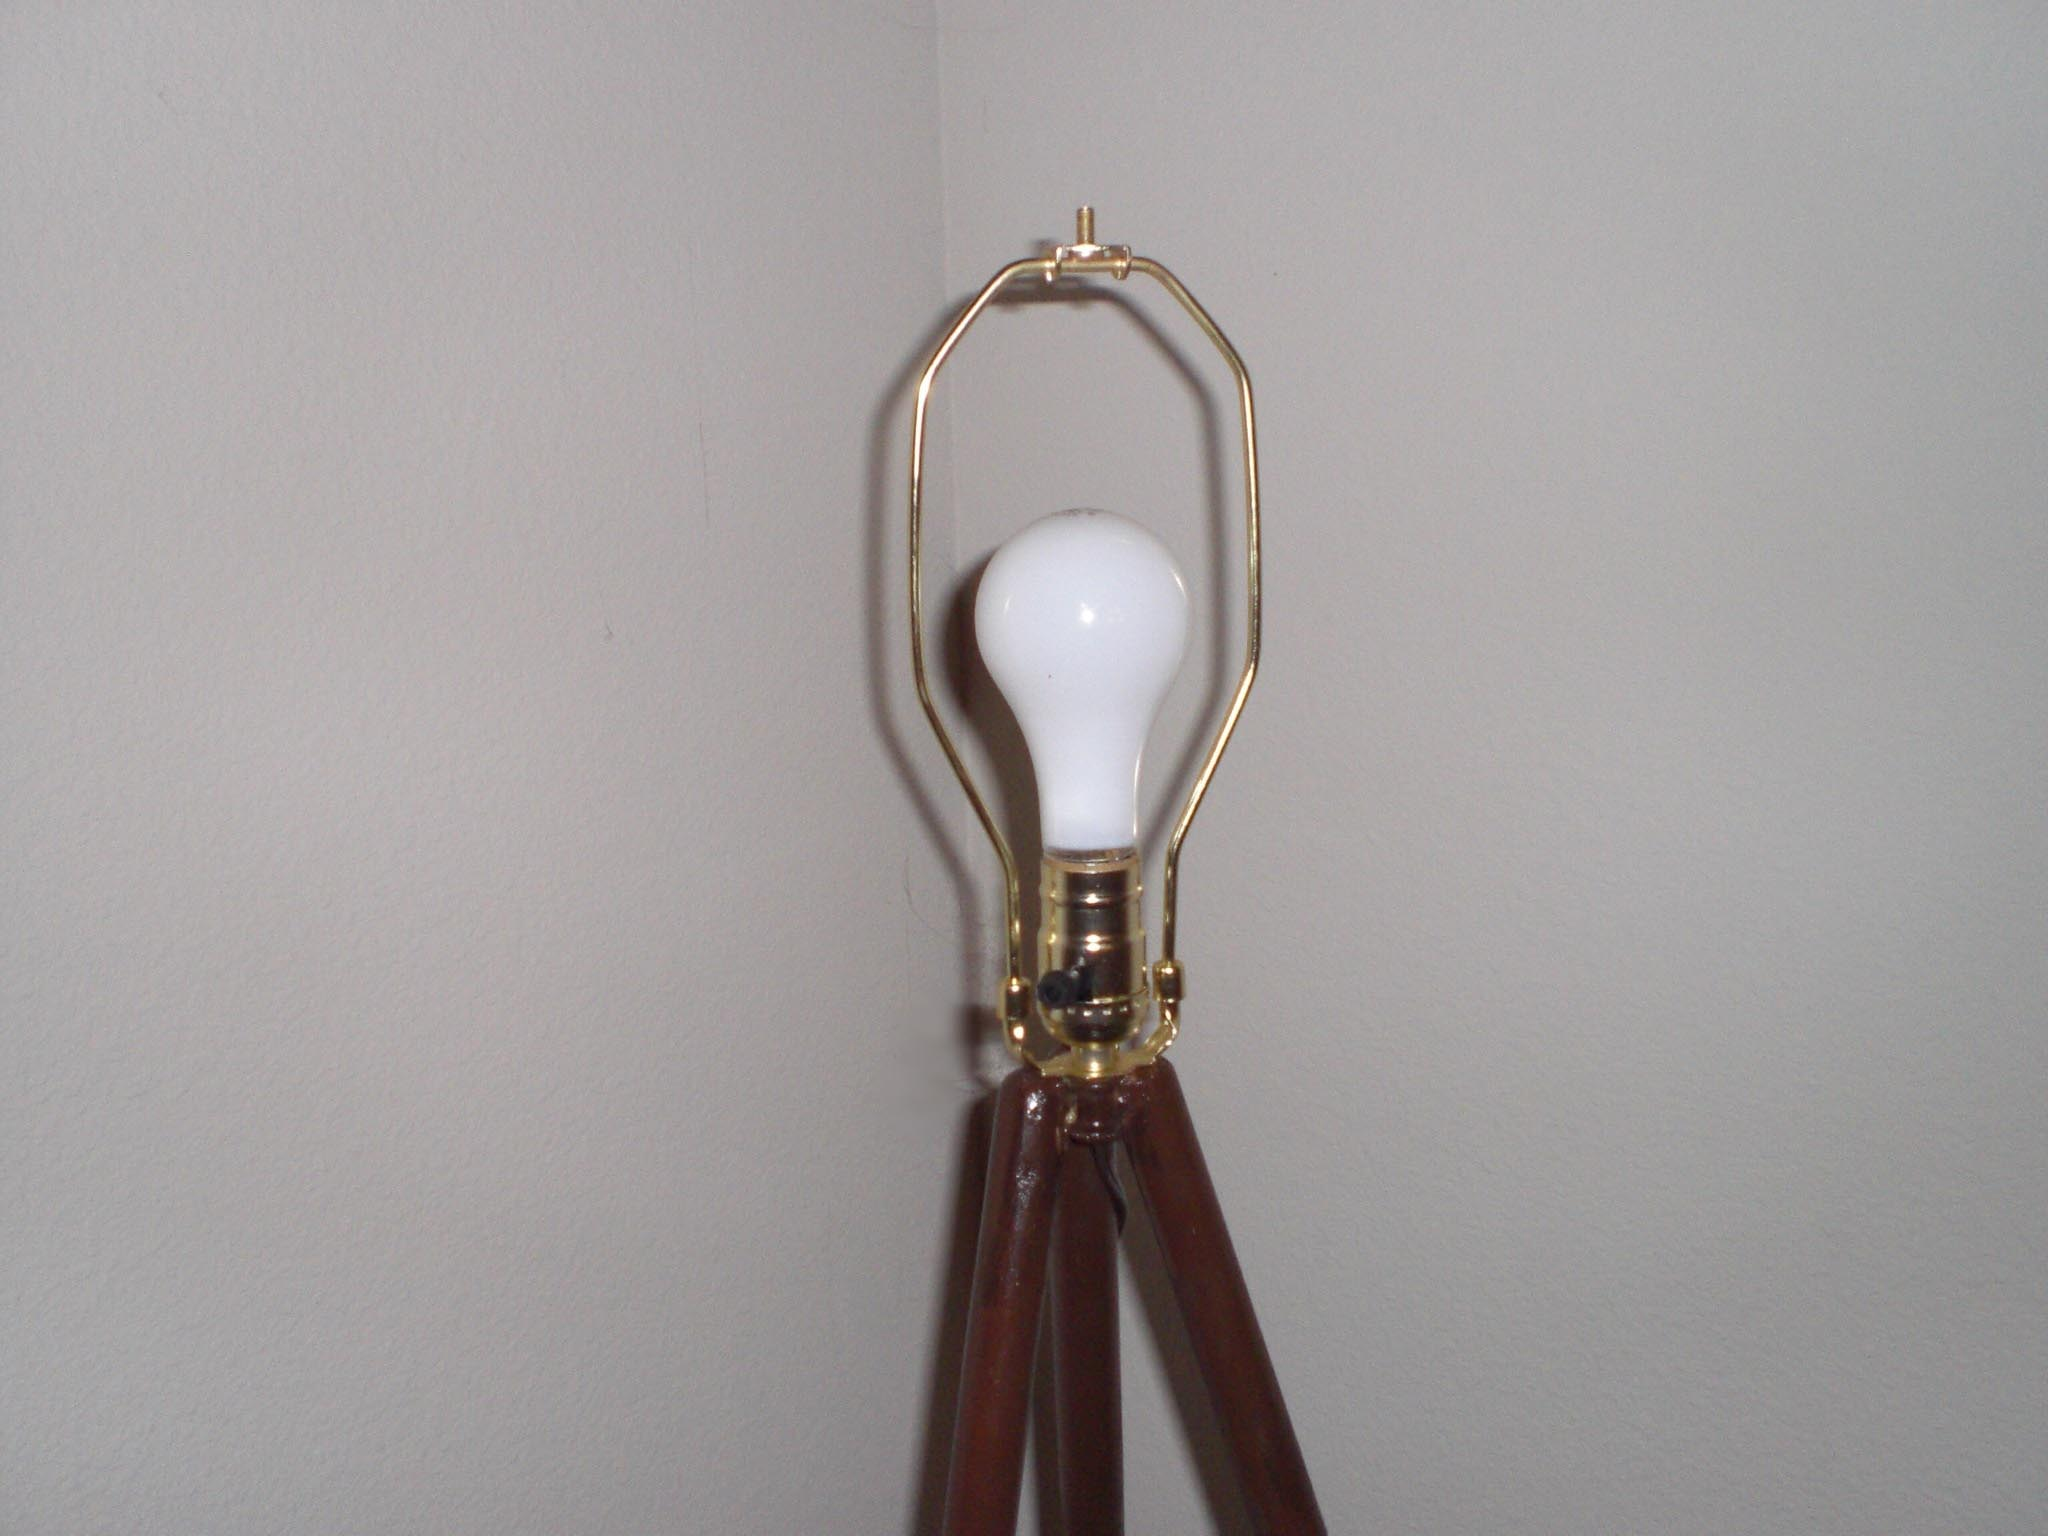 DIY Floor Lamp Kit